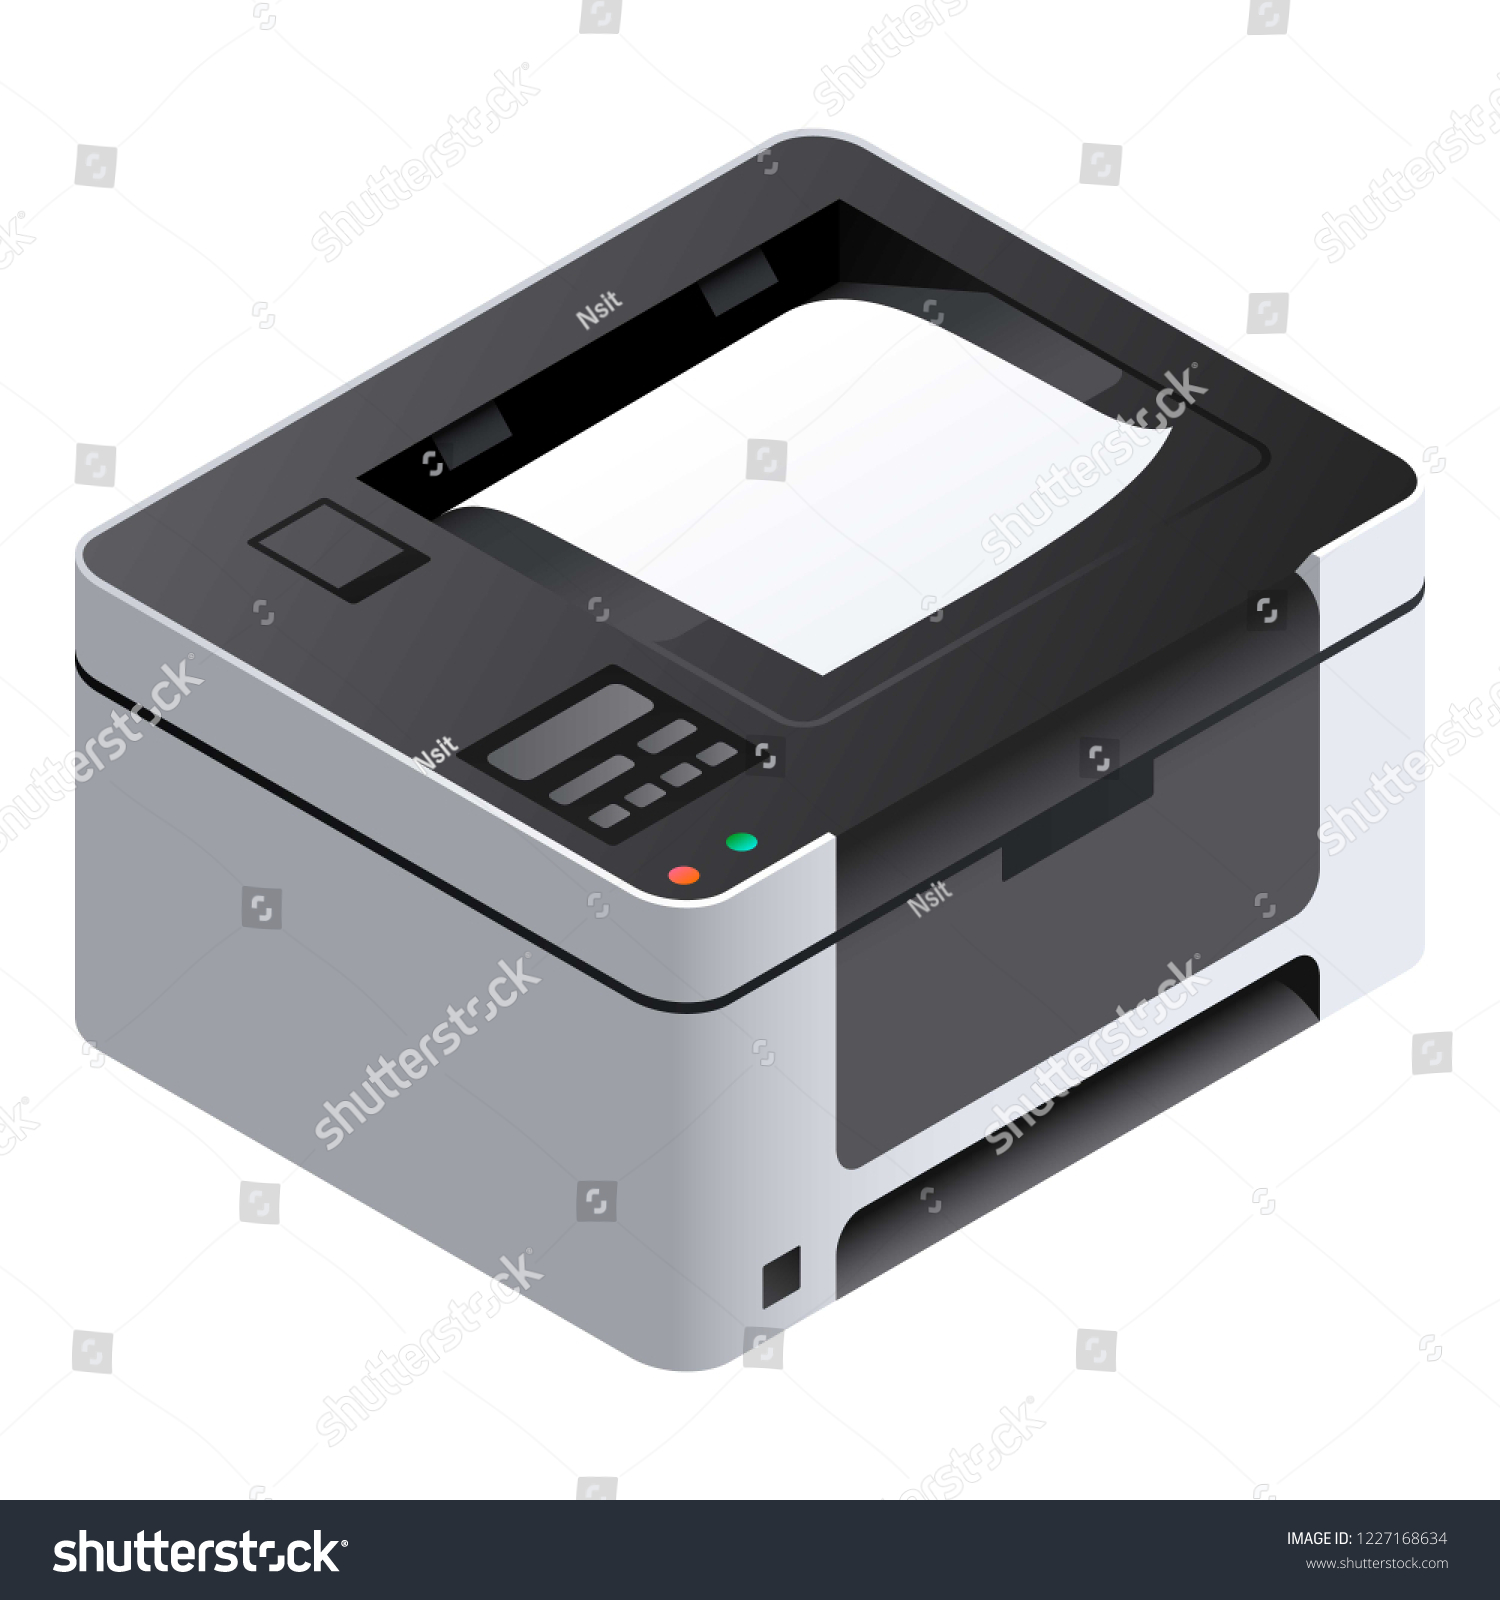 printer icon isometric printer vector icon stock vector royalty free 1227168634 https www shutterstock com image vector printer icon isometric vector web design 1227168634